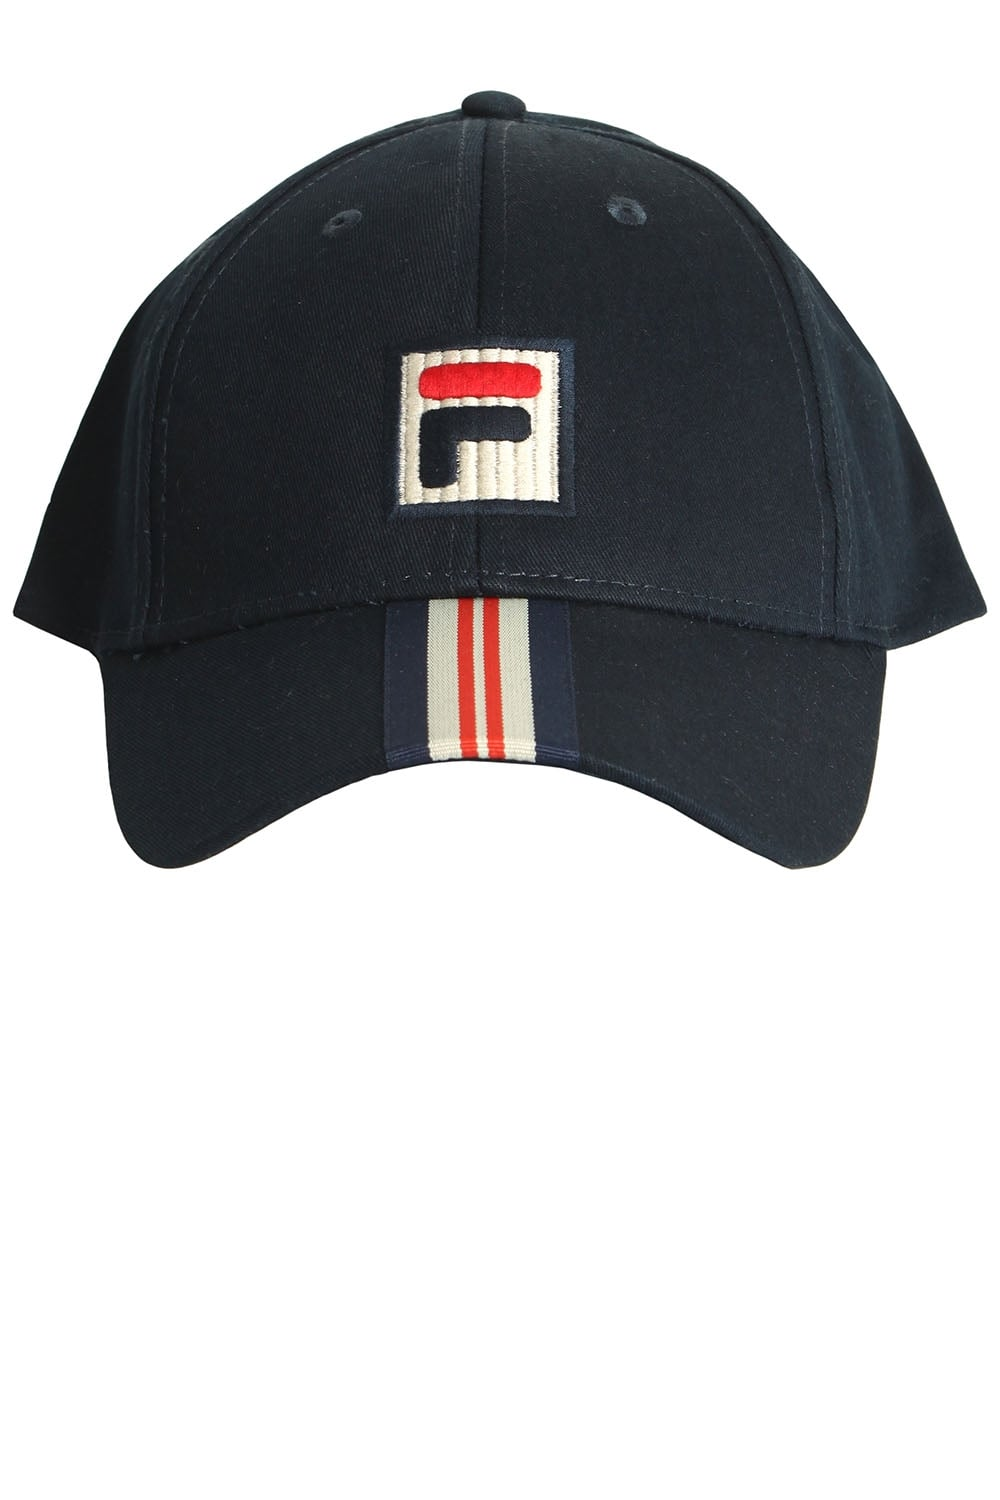 21f6a6e6461661 Fila Vintage Walker Baseball Cap Navy | Buy Fila Hats & Baseball Caps